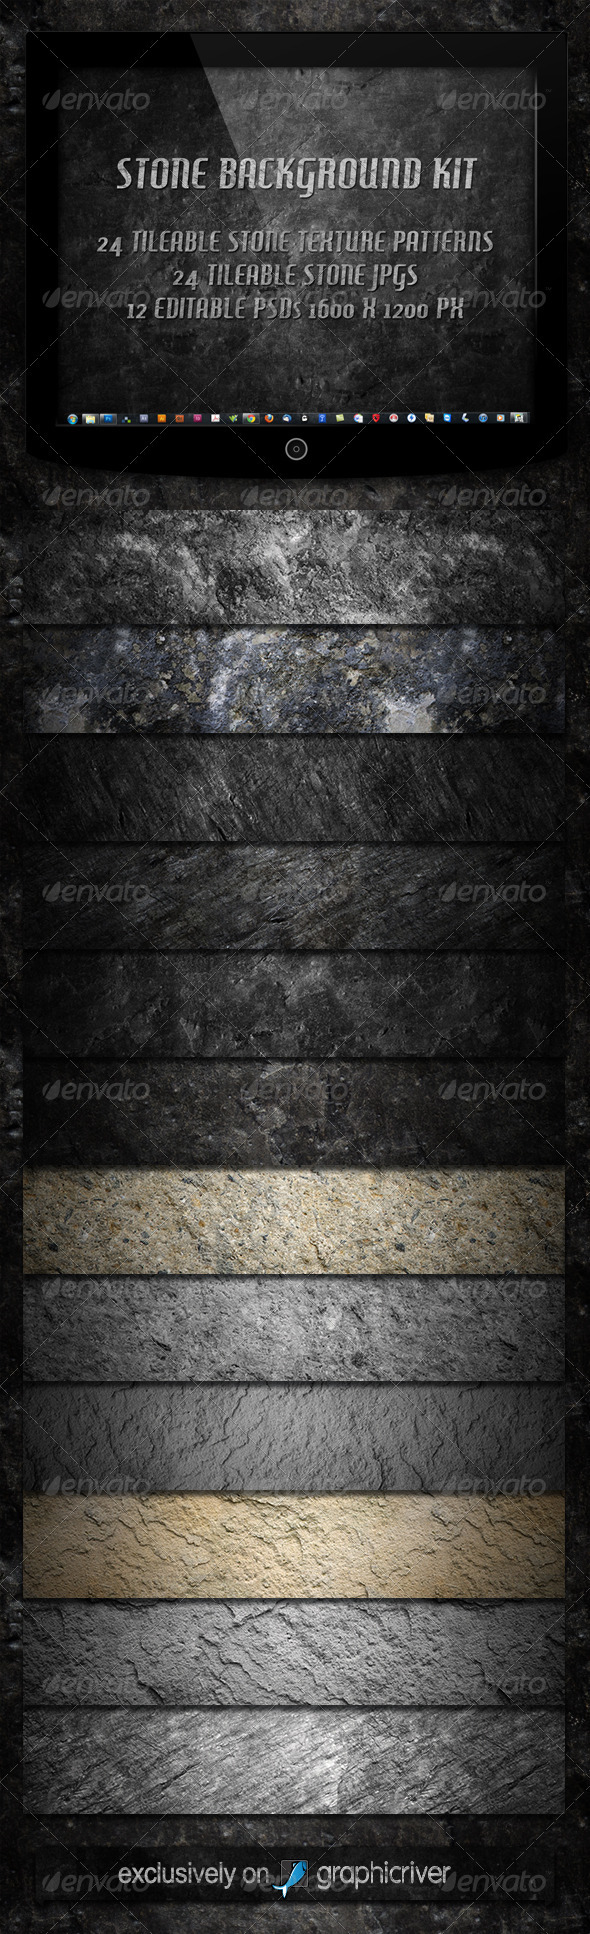 GraphicRiver 12 Tileable Stone Textures Background Kit 2320580